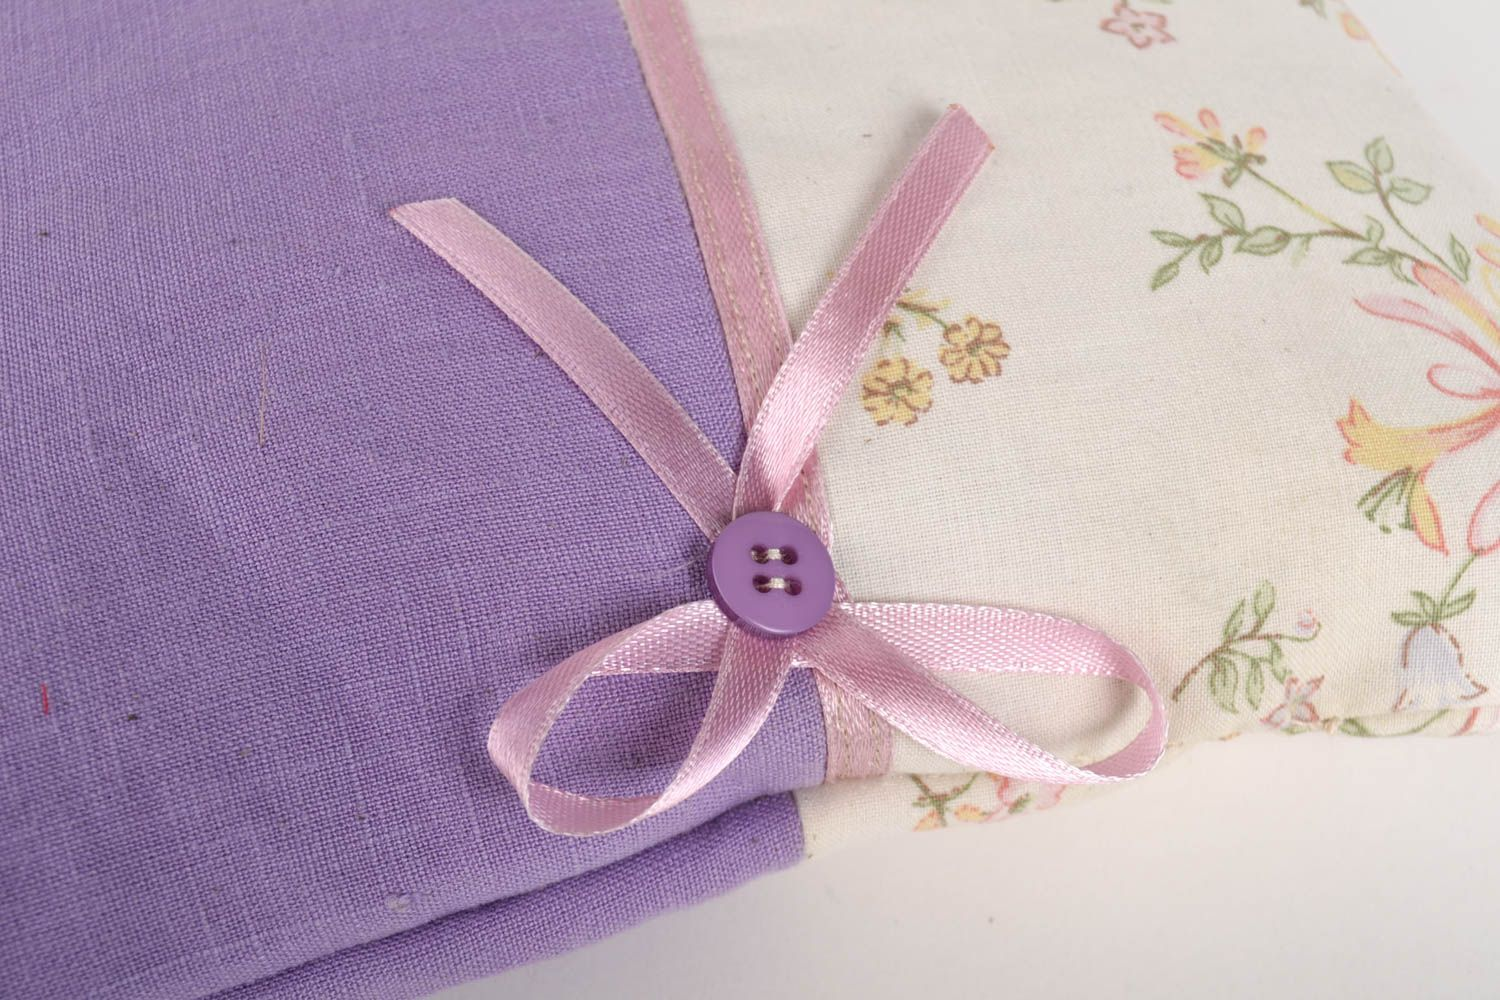 Homemade scented sachet therapeutic pillows aroma therapy home decorations photo 2